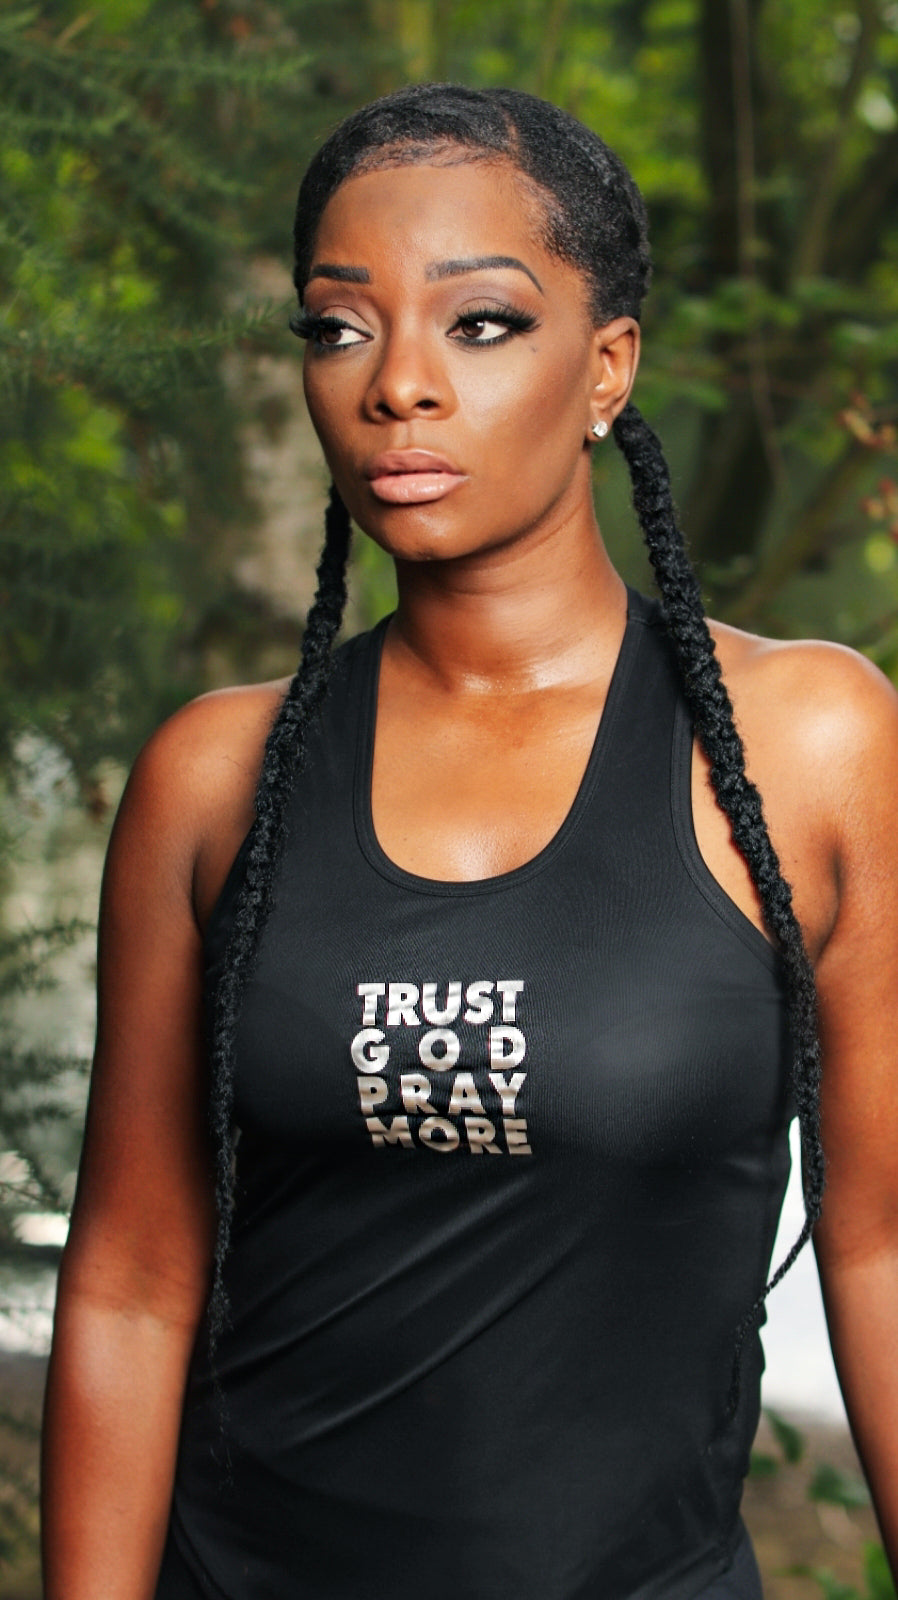 Womens TRUST GOD Performance Racer Back Vest (Black)